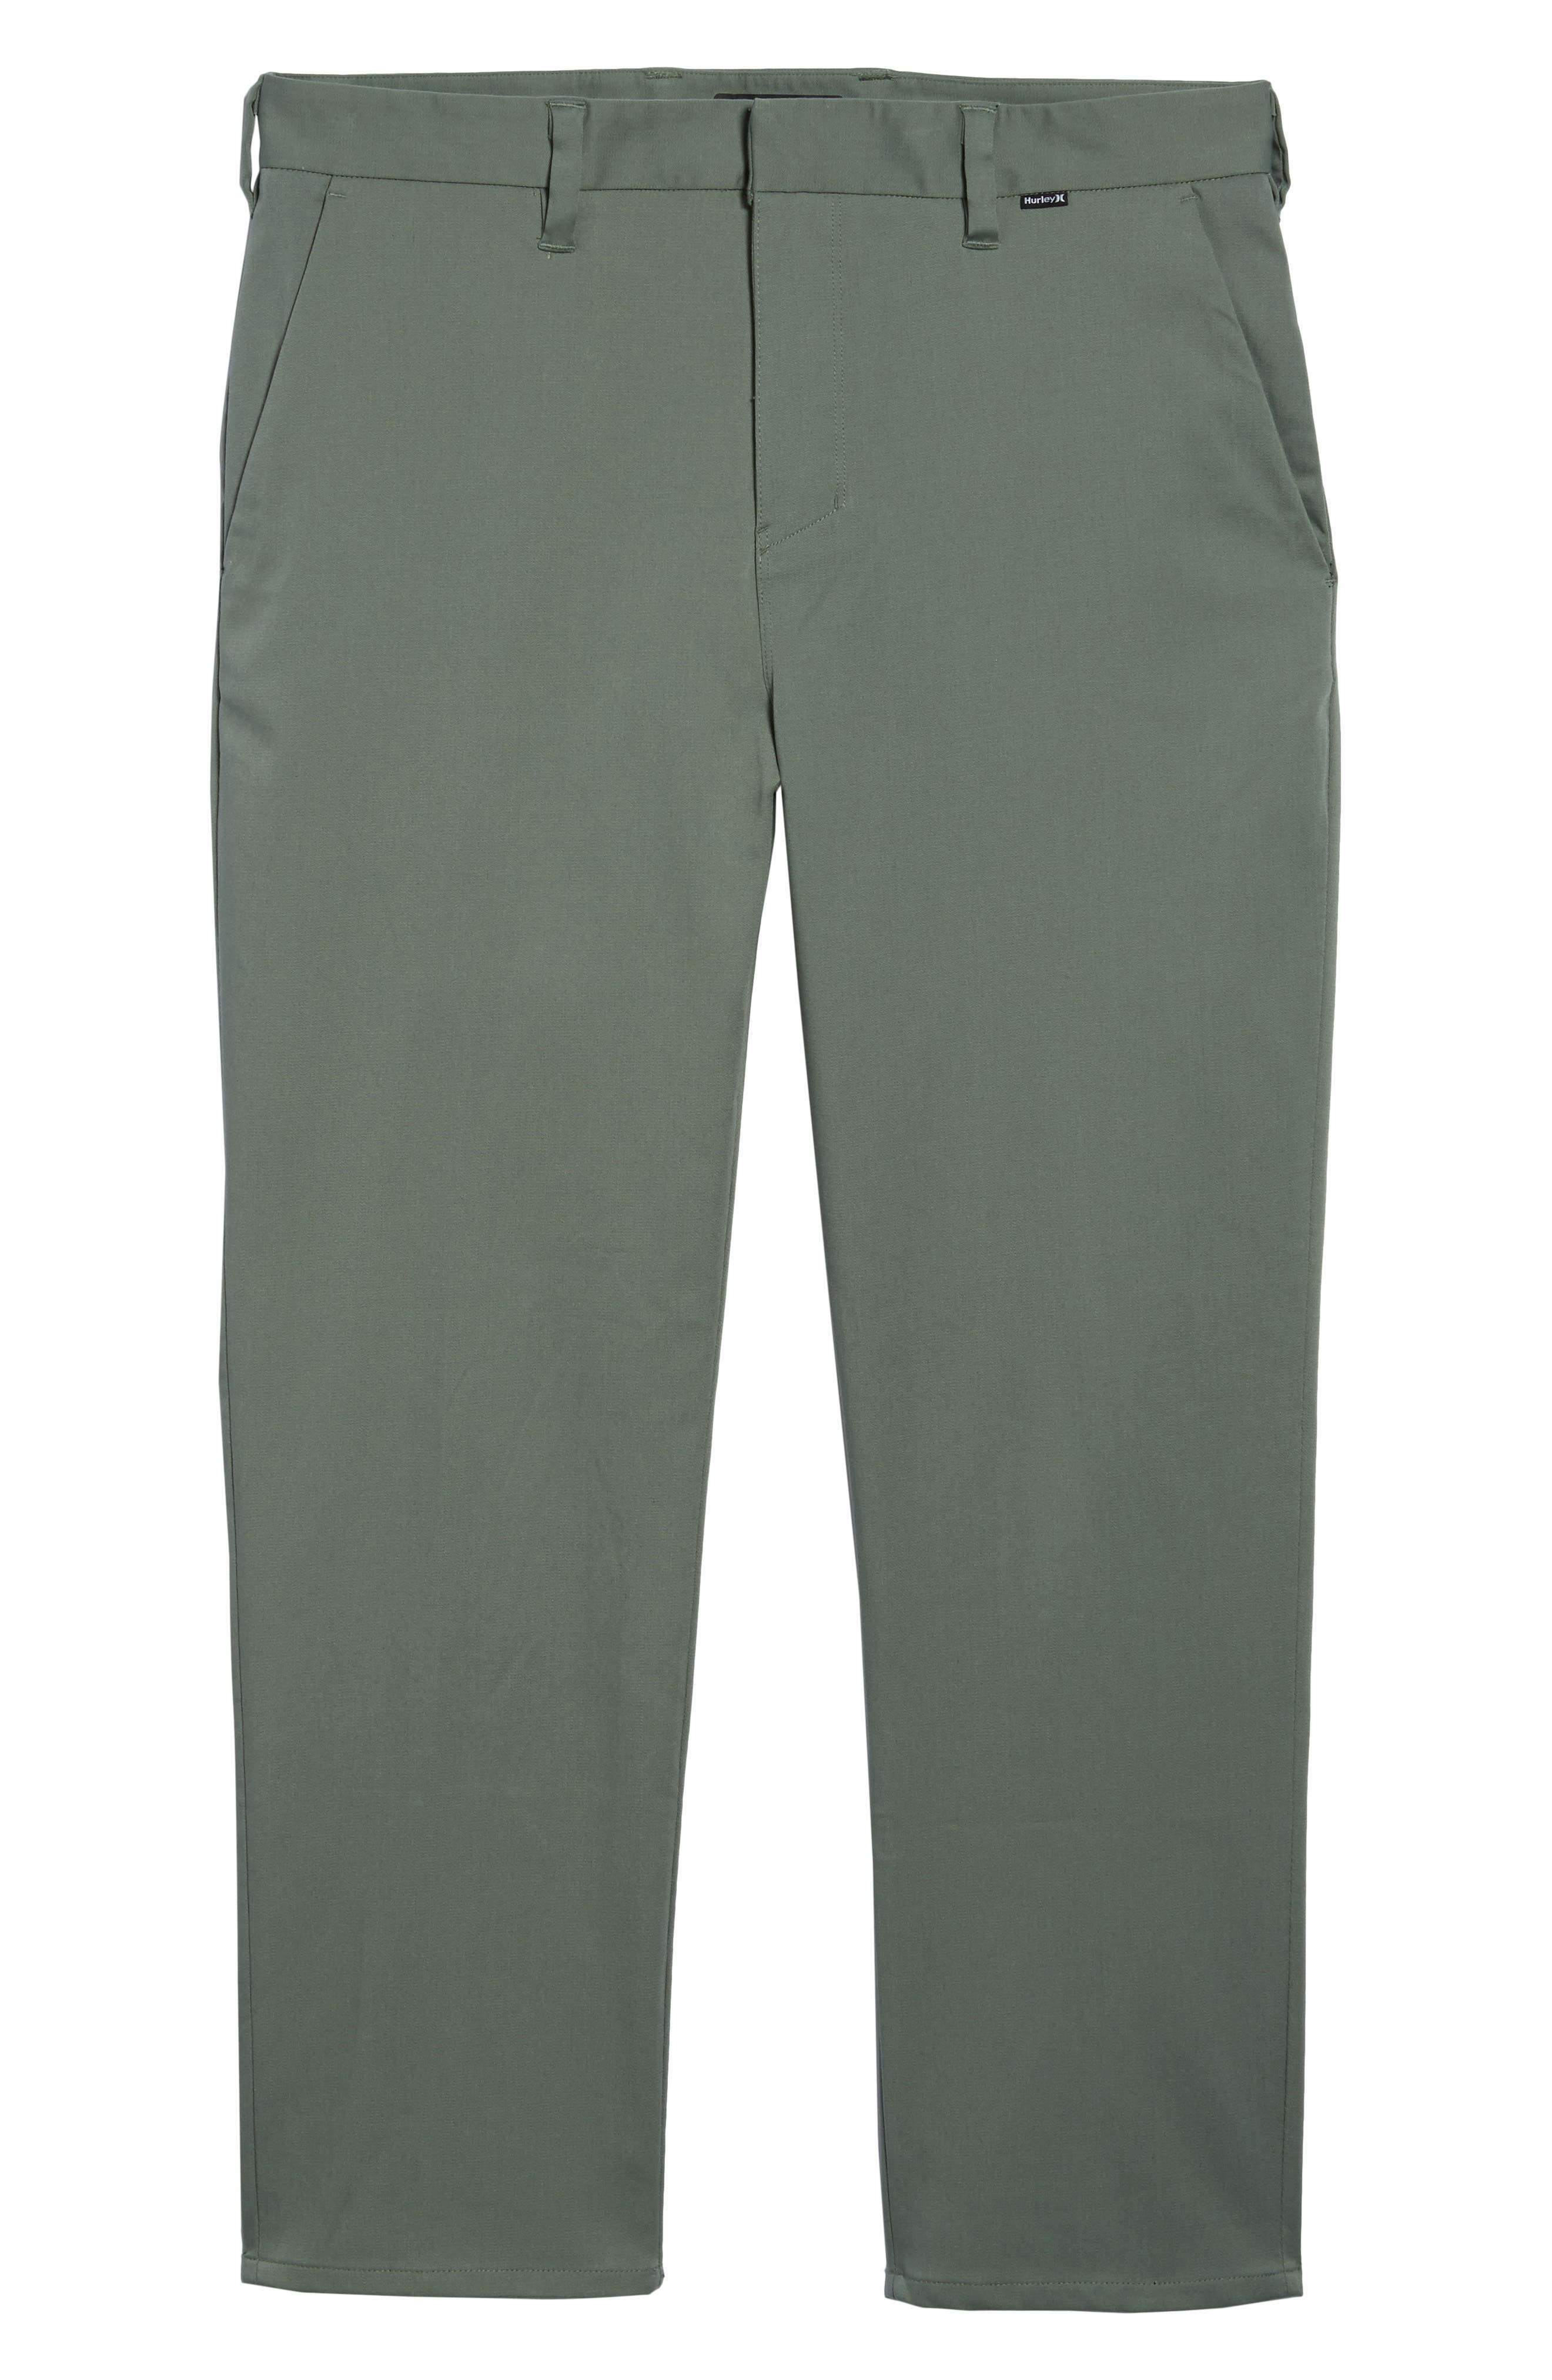 Dry Transistor Straight Leg Pants,                             Alternate thumbnail 6, color,                             Clay Green